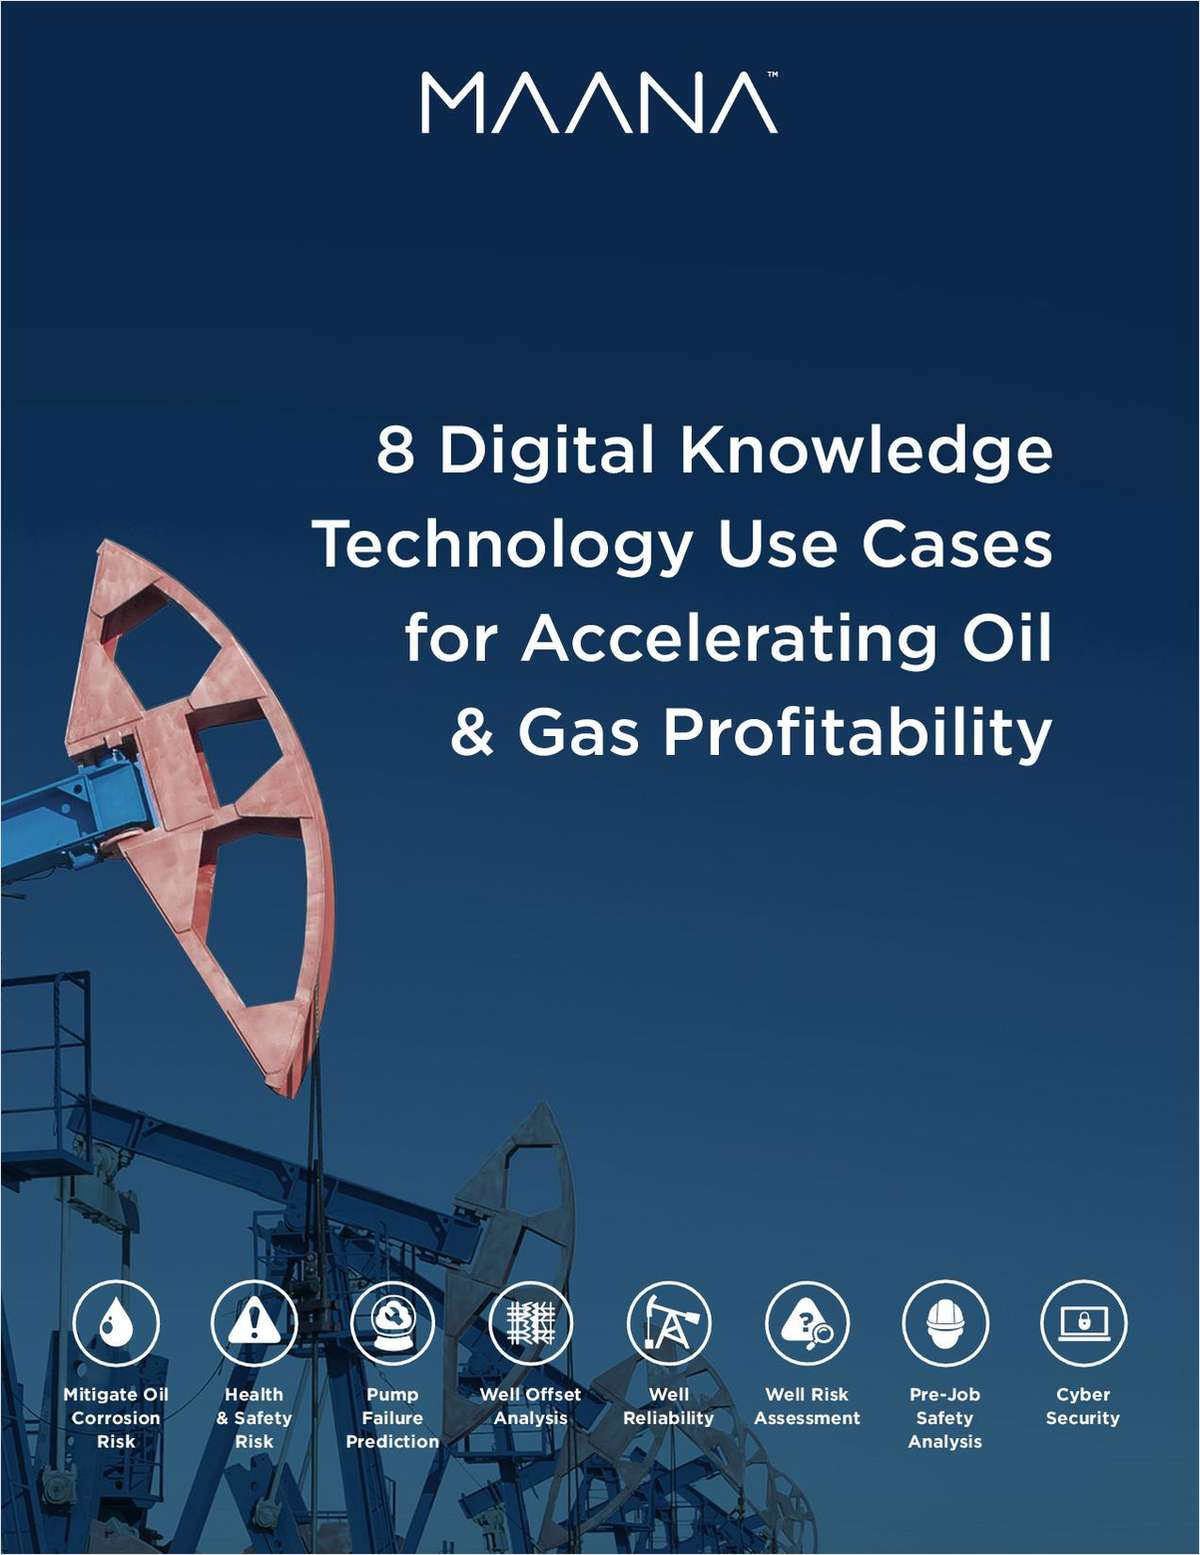 8 Digital Knowledge Use Cases for Accelerating Oil & Gas Profitability